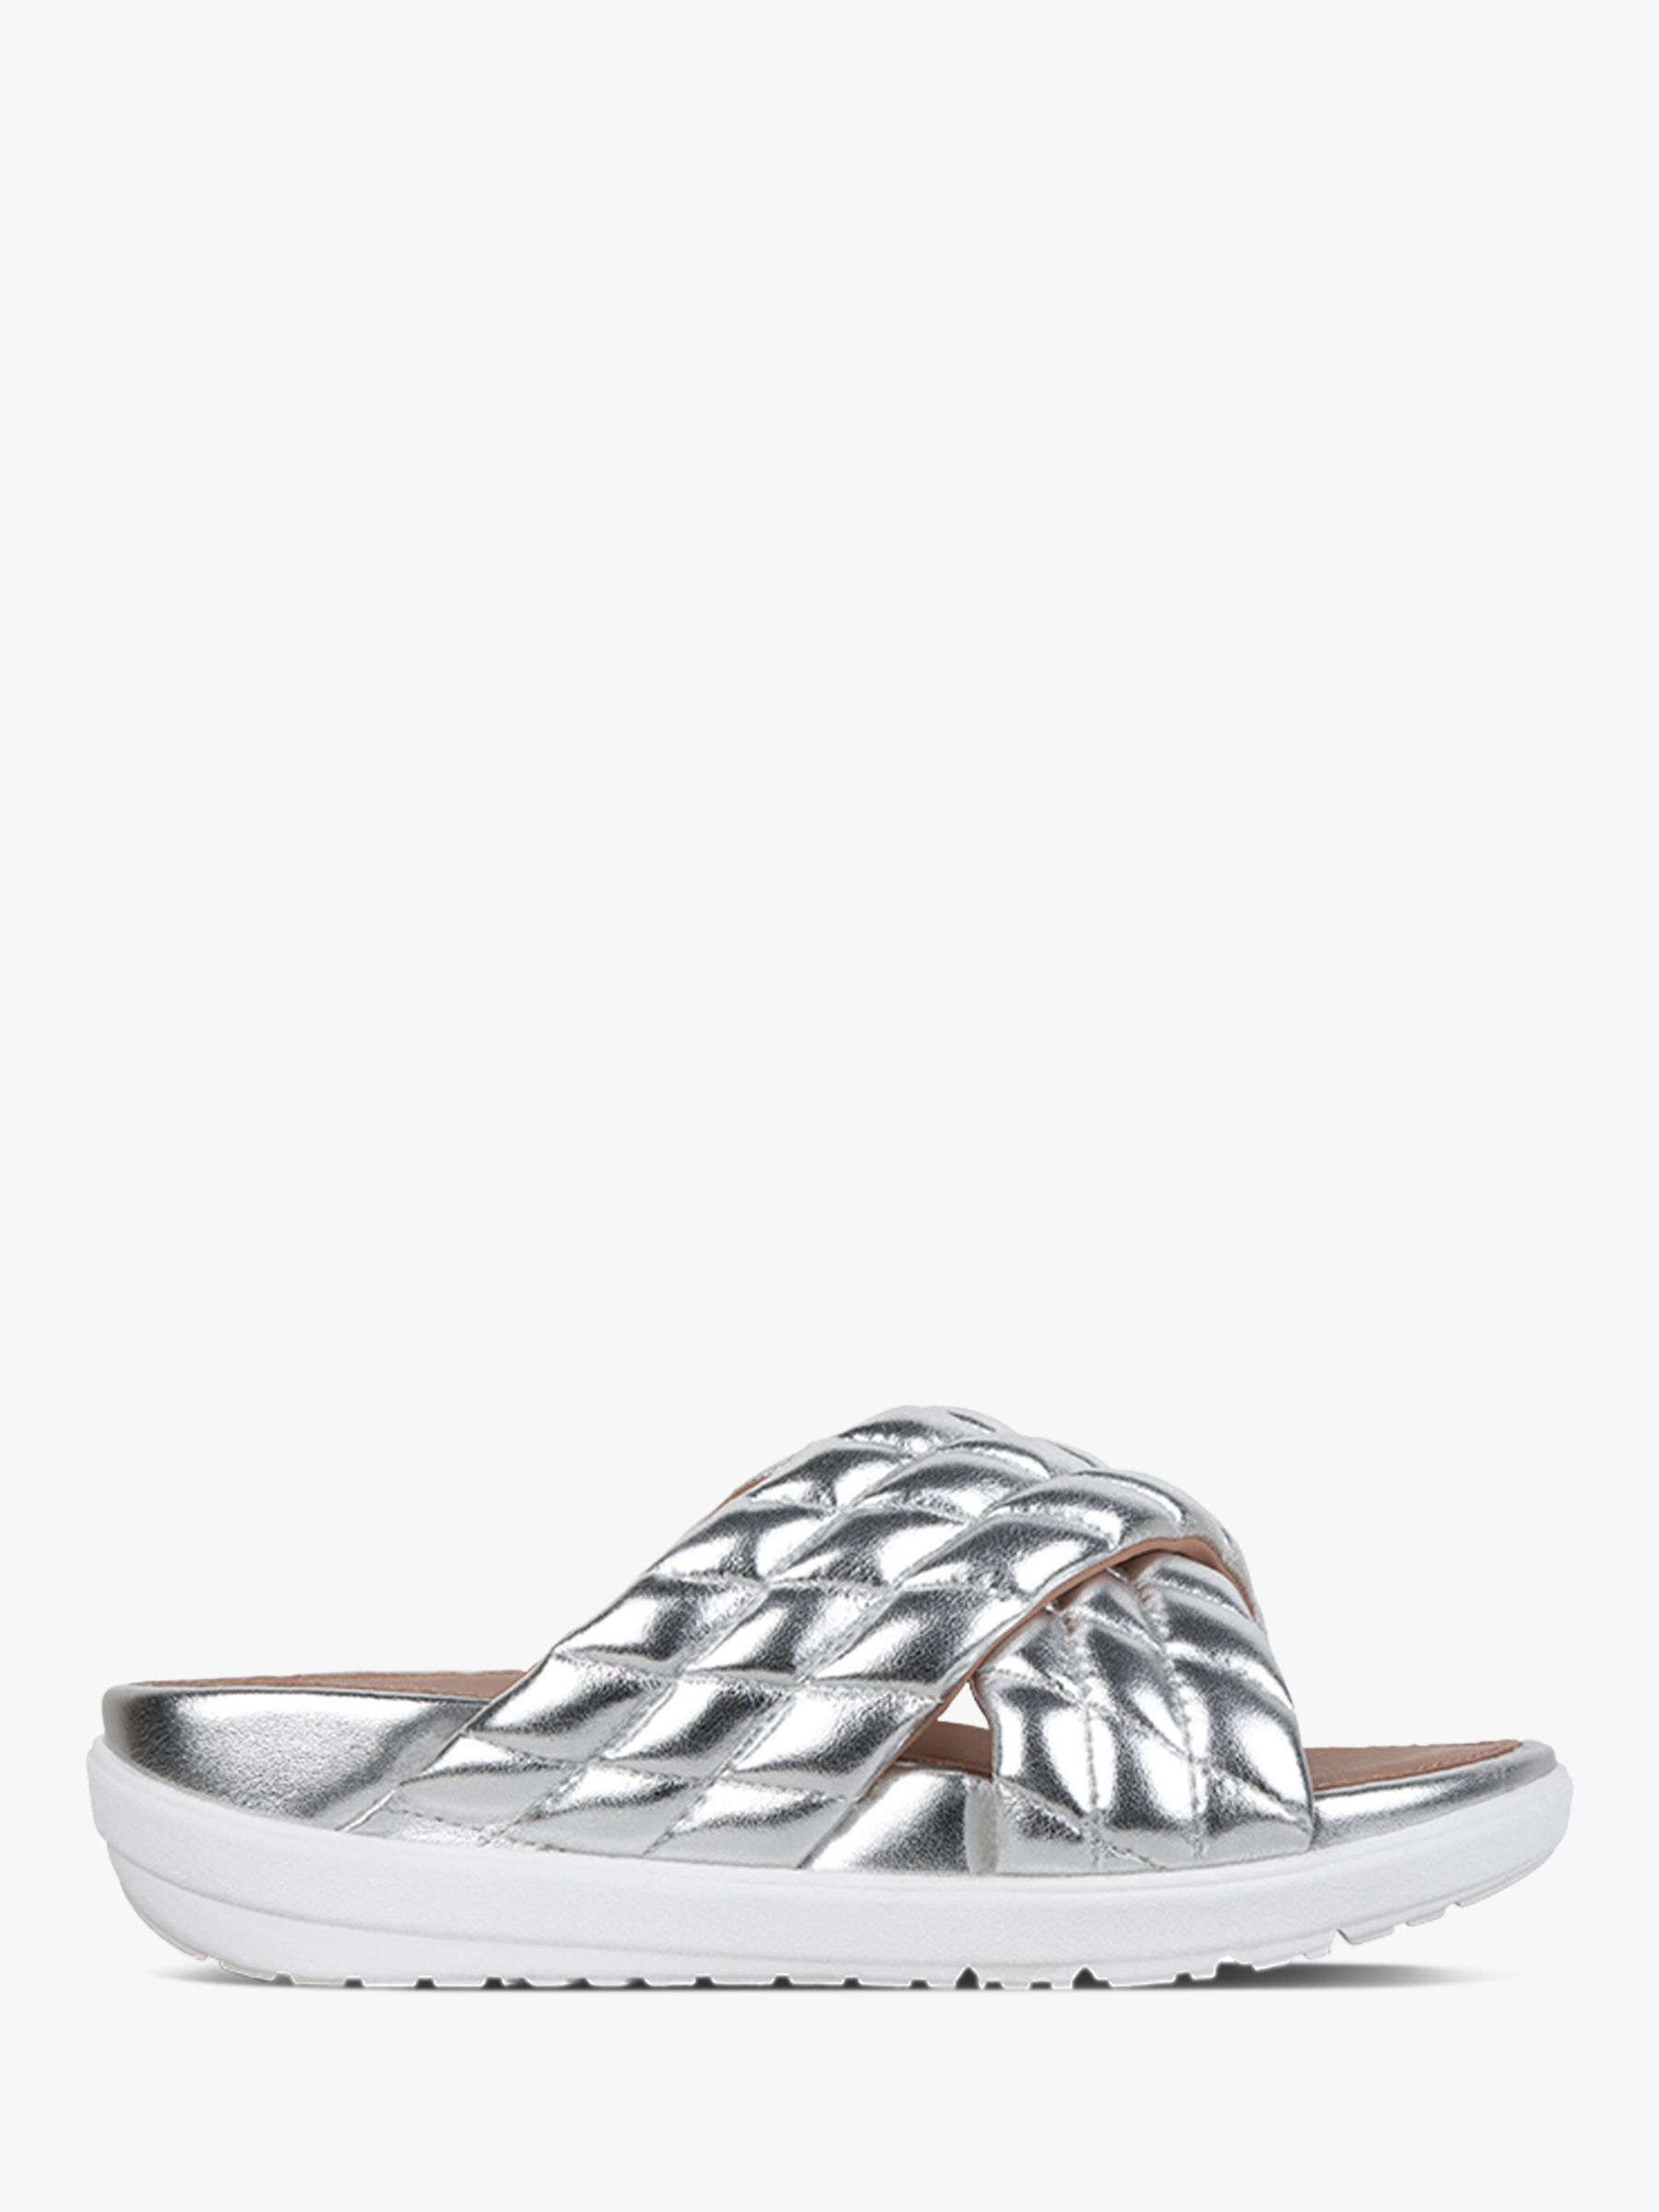 Fitflop FitFlop Loosh Leather Cross Slides, Silver